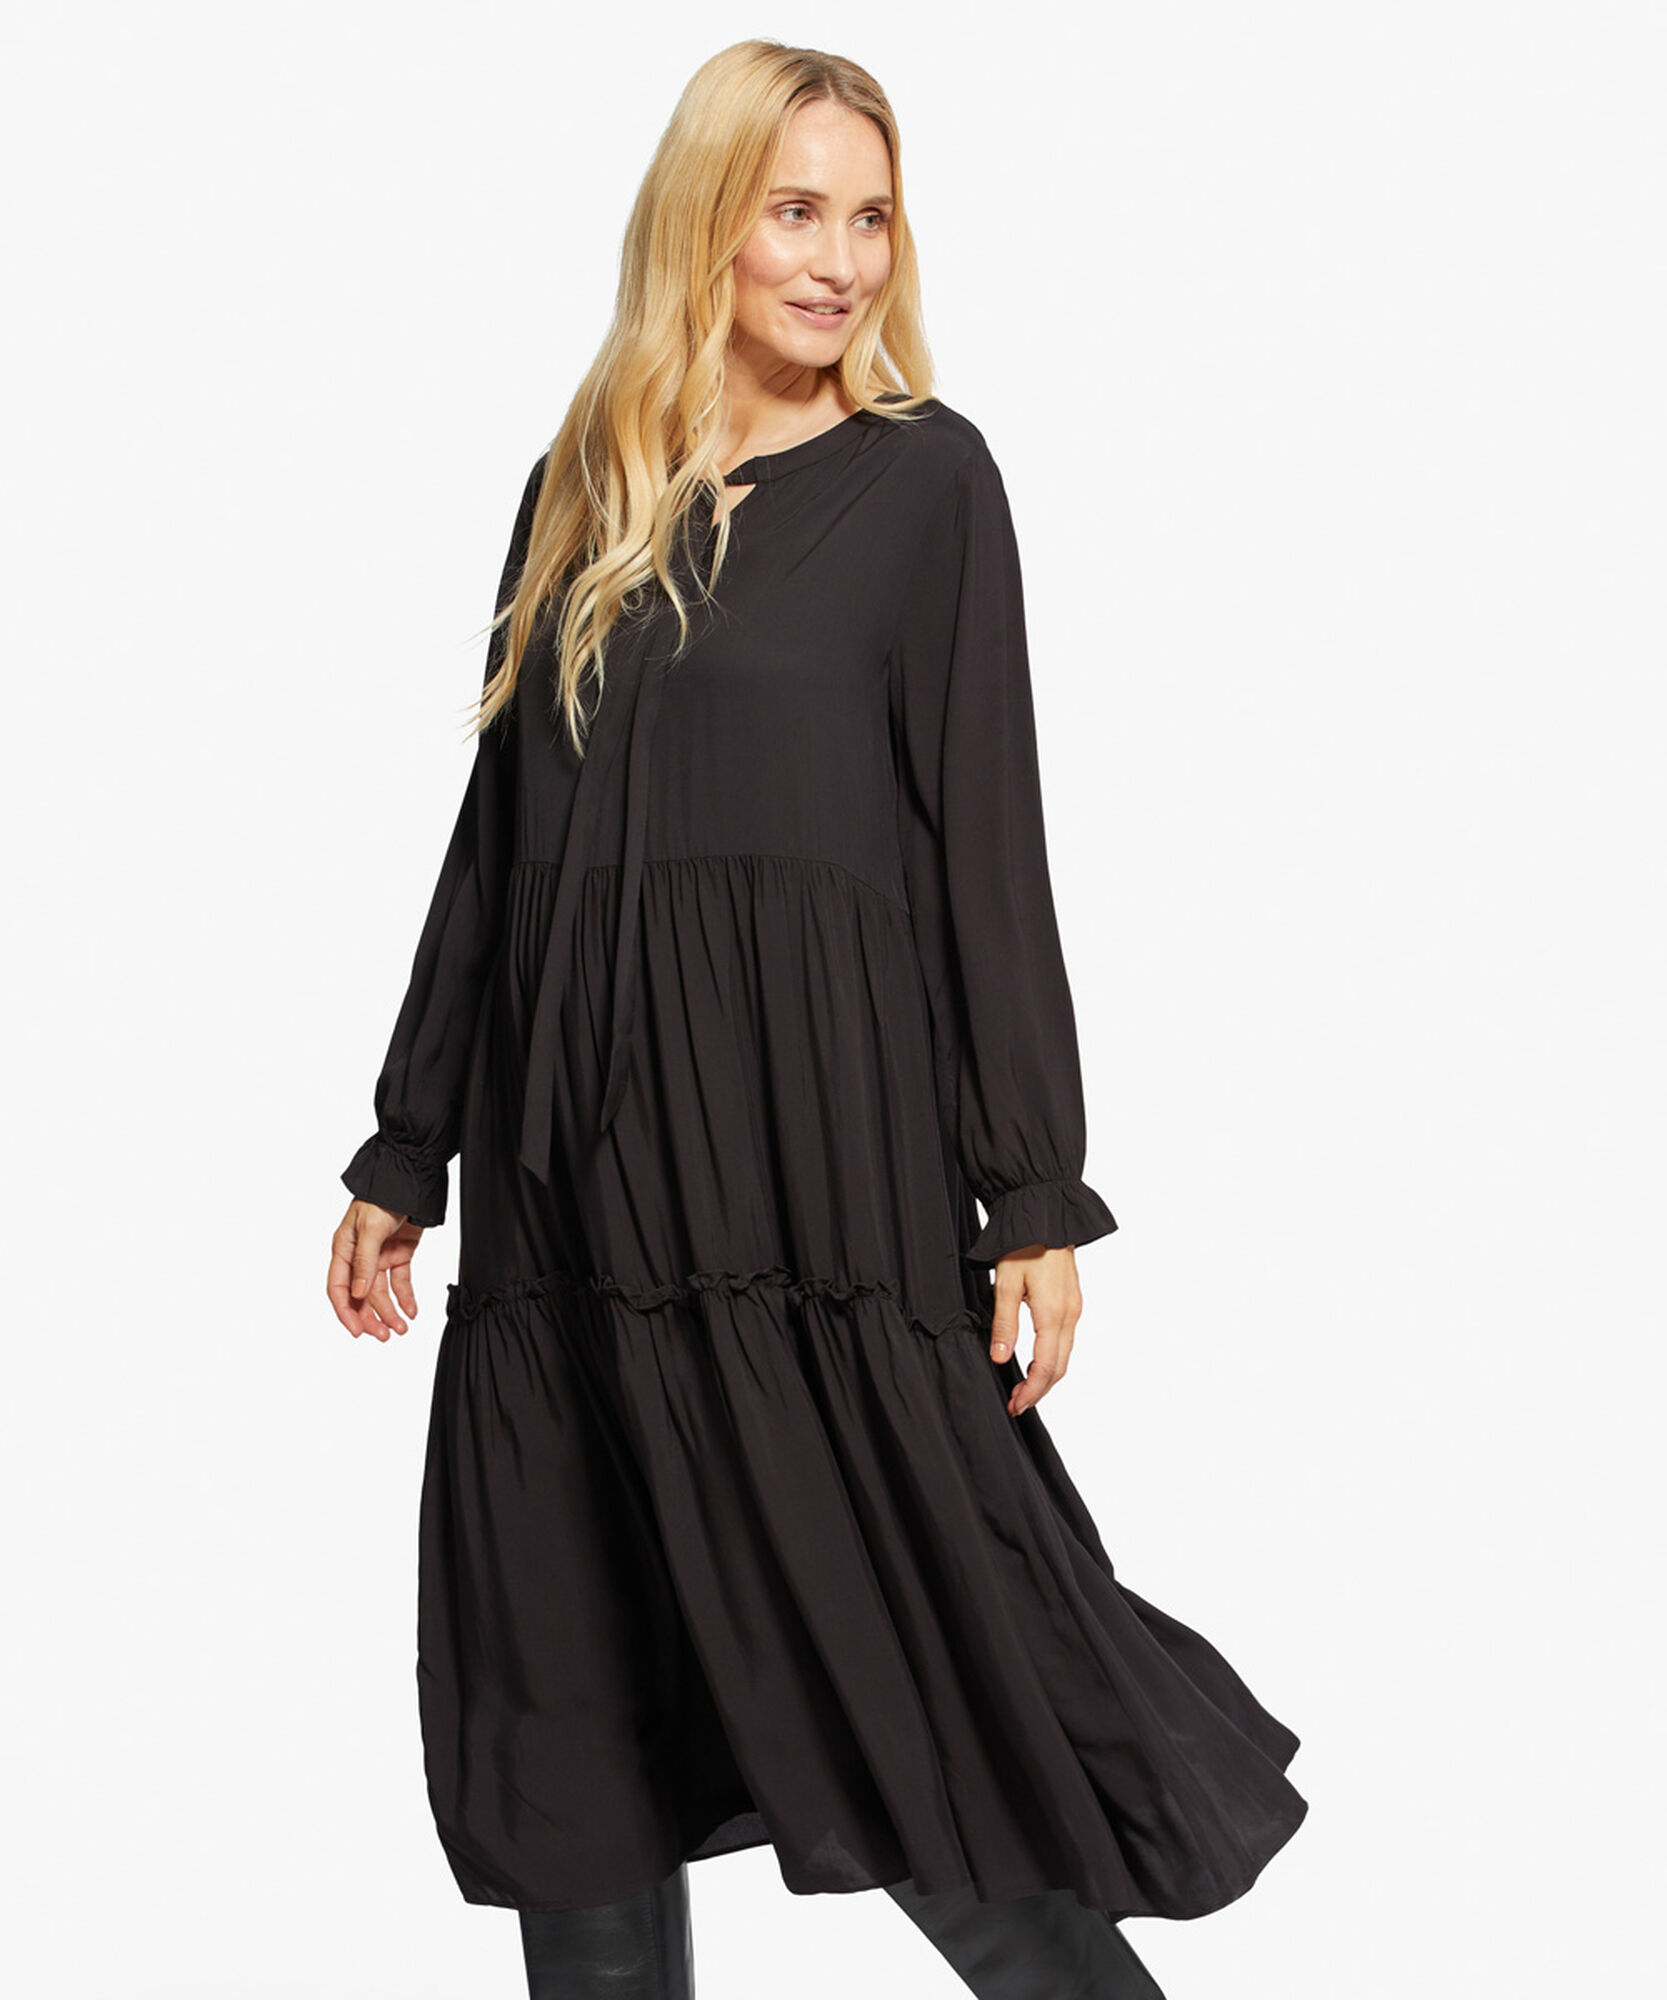 NUKINI DRESS, Black, hi-res